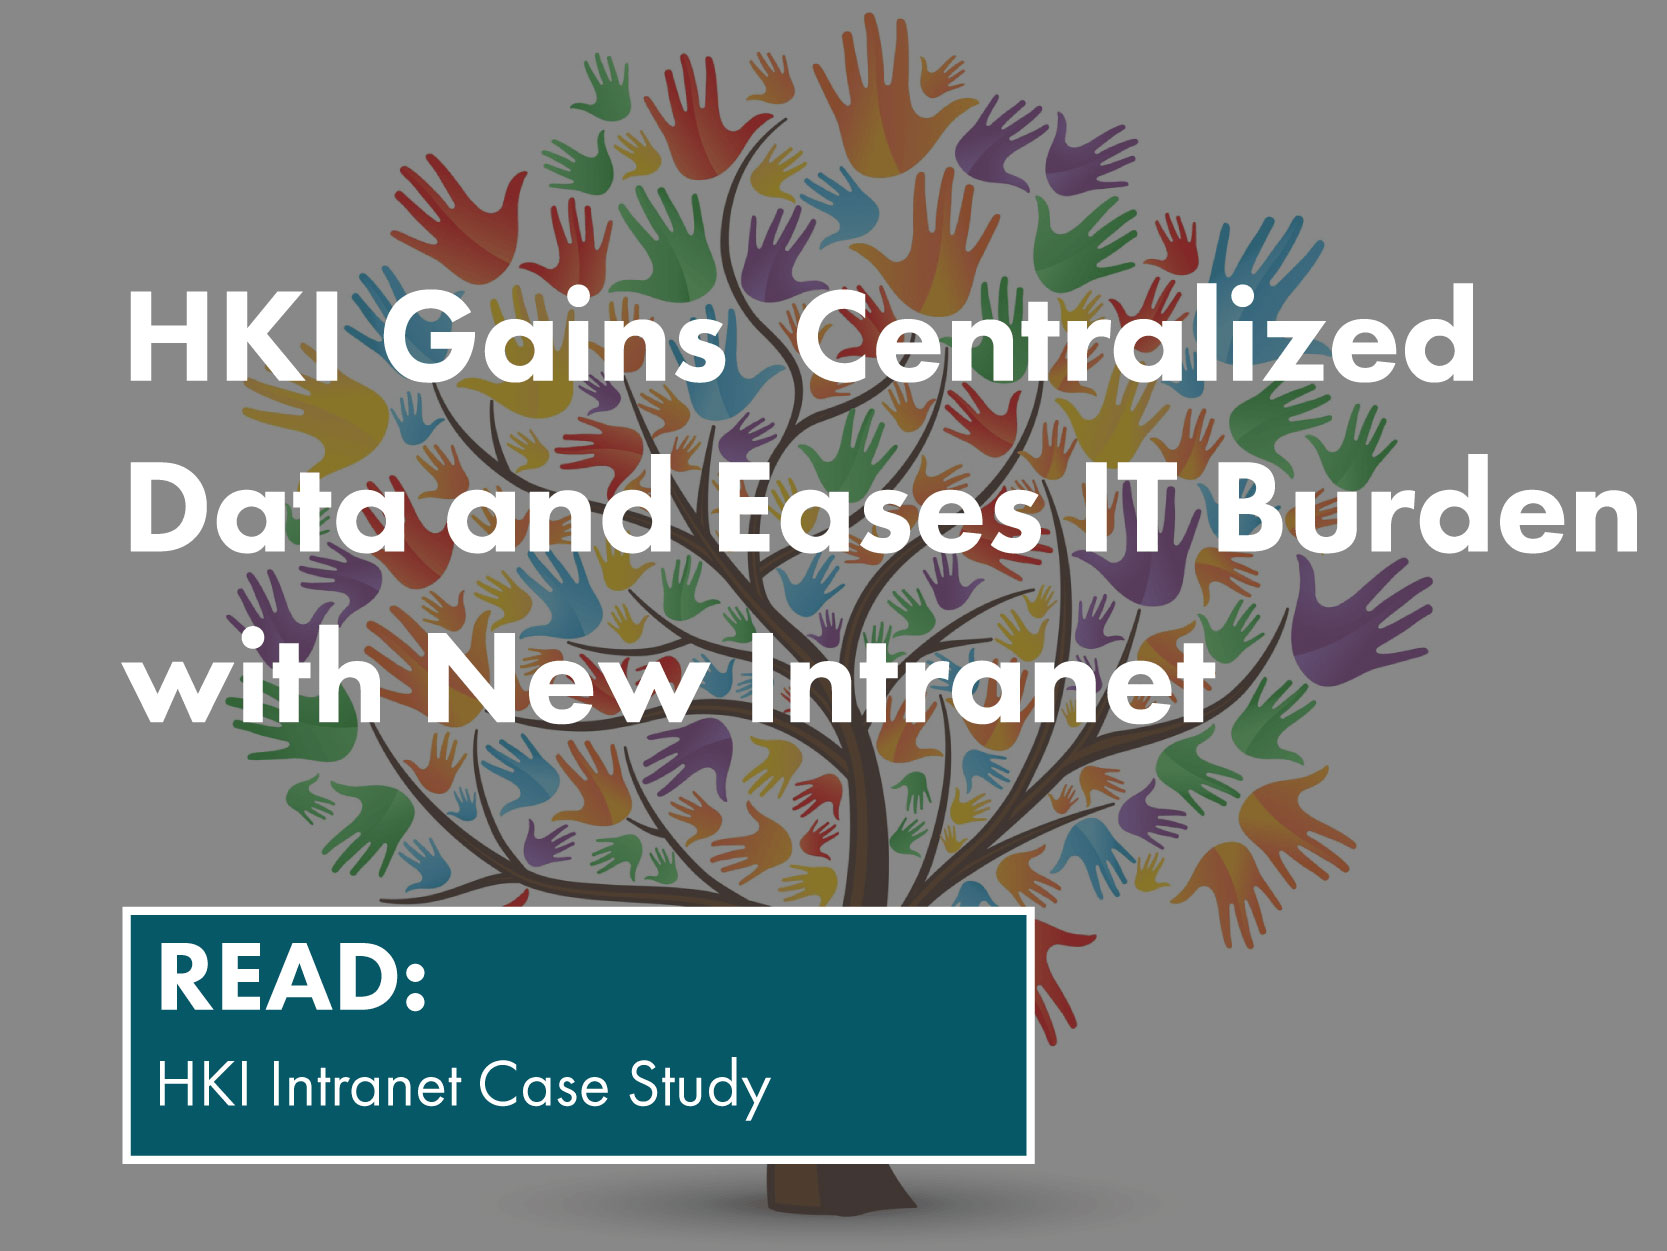 HKI gains centralized data and eases IT burden with new intranet. Read the HKI Intranet Case Study.